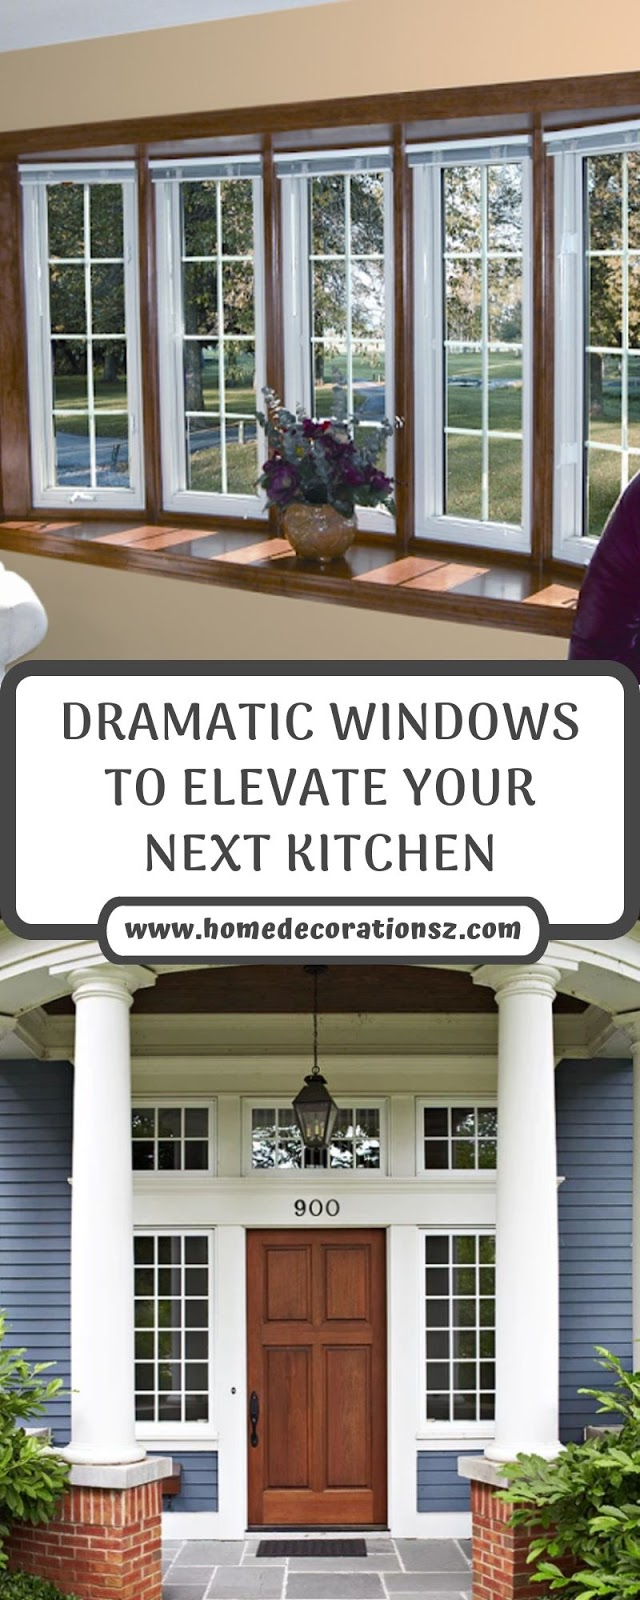 DRAMATIC WINDOWS TO ELEVATE YOUR NEXT KITCHEN